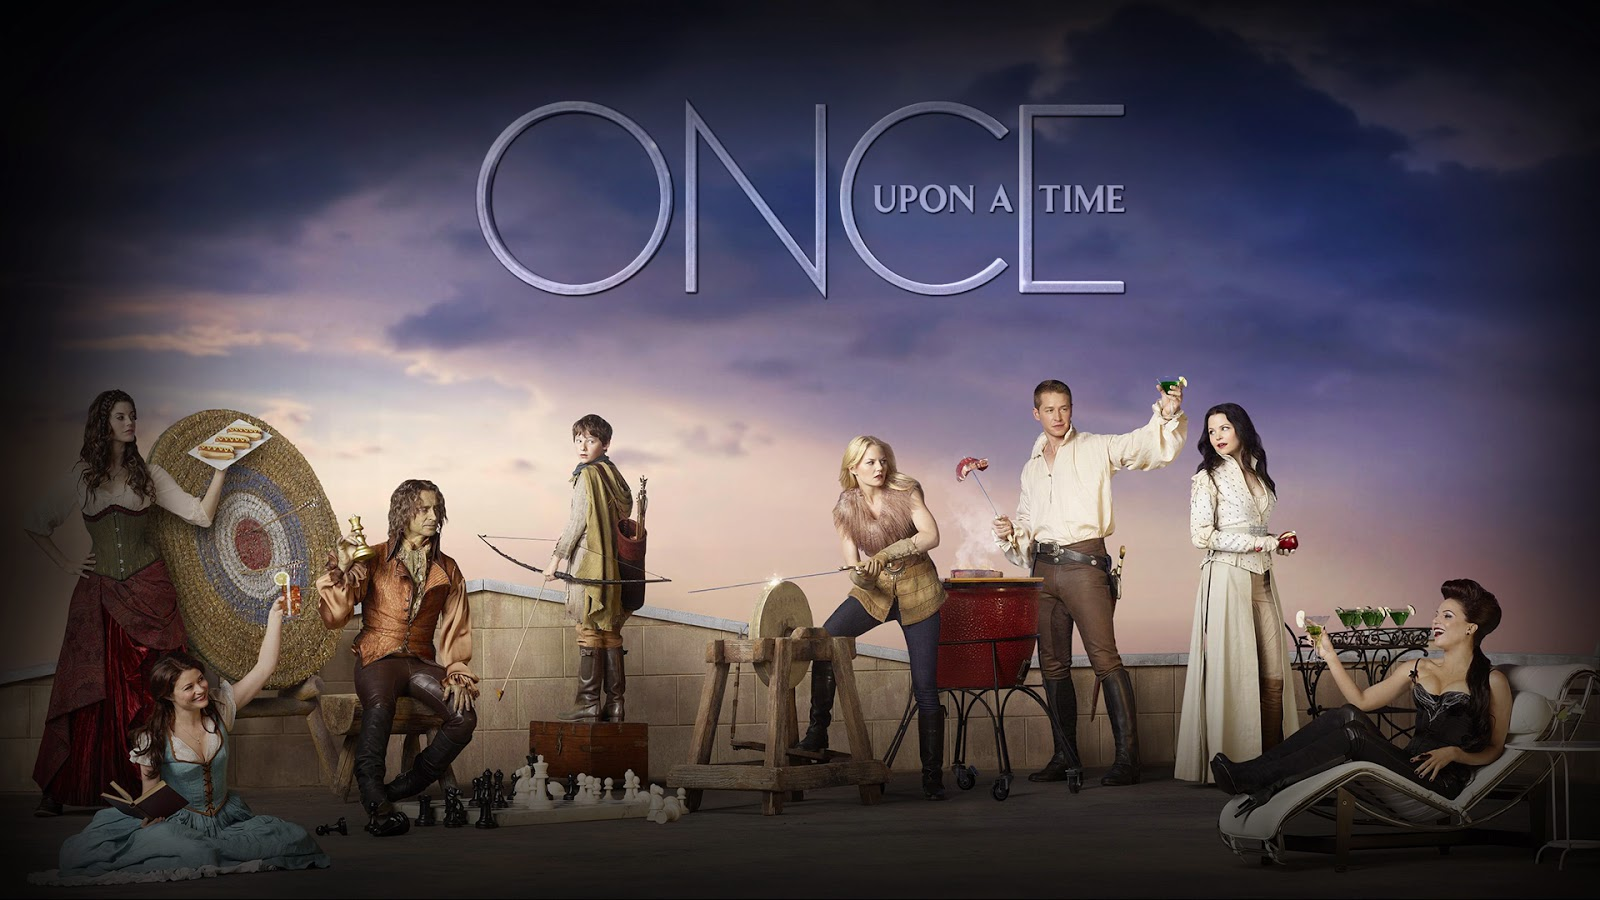 Promonauta Once Upon a Time